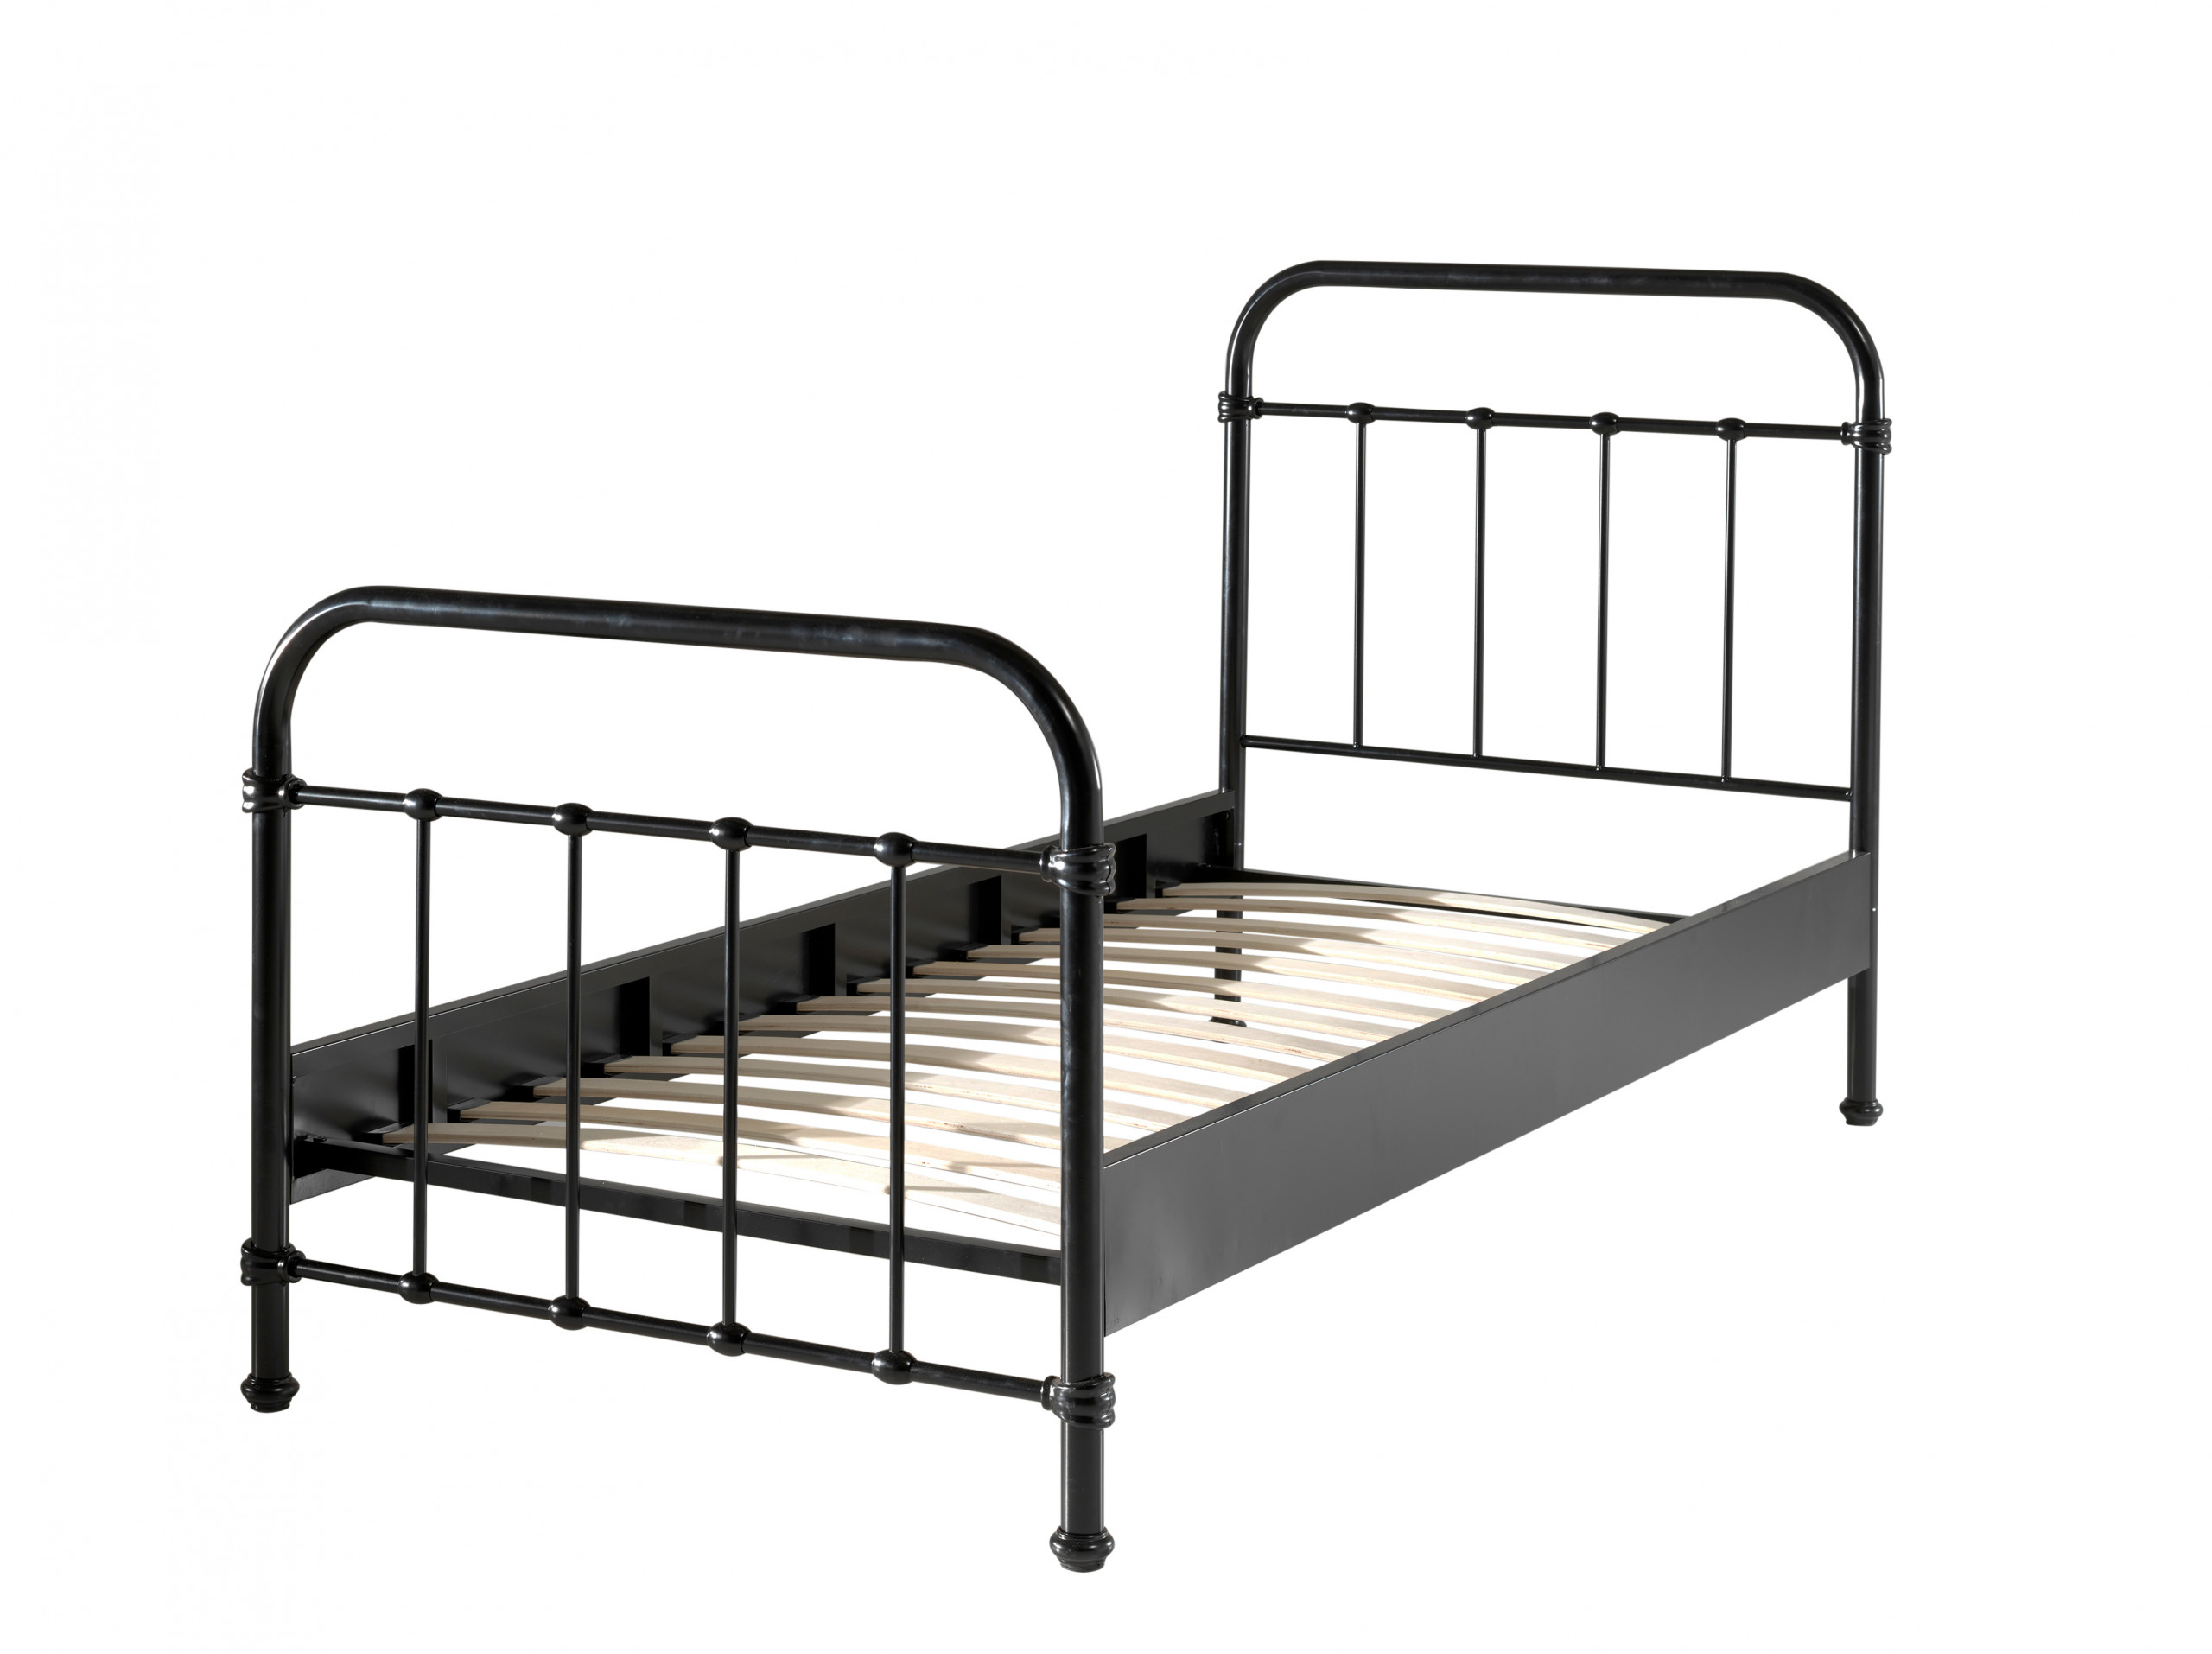 City Metal Single Bed in Black cut out